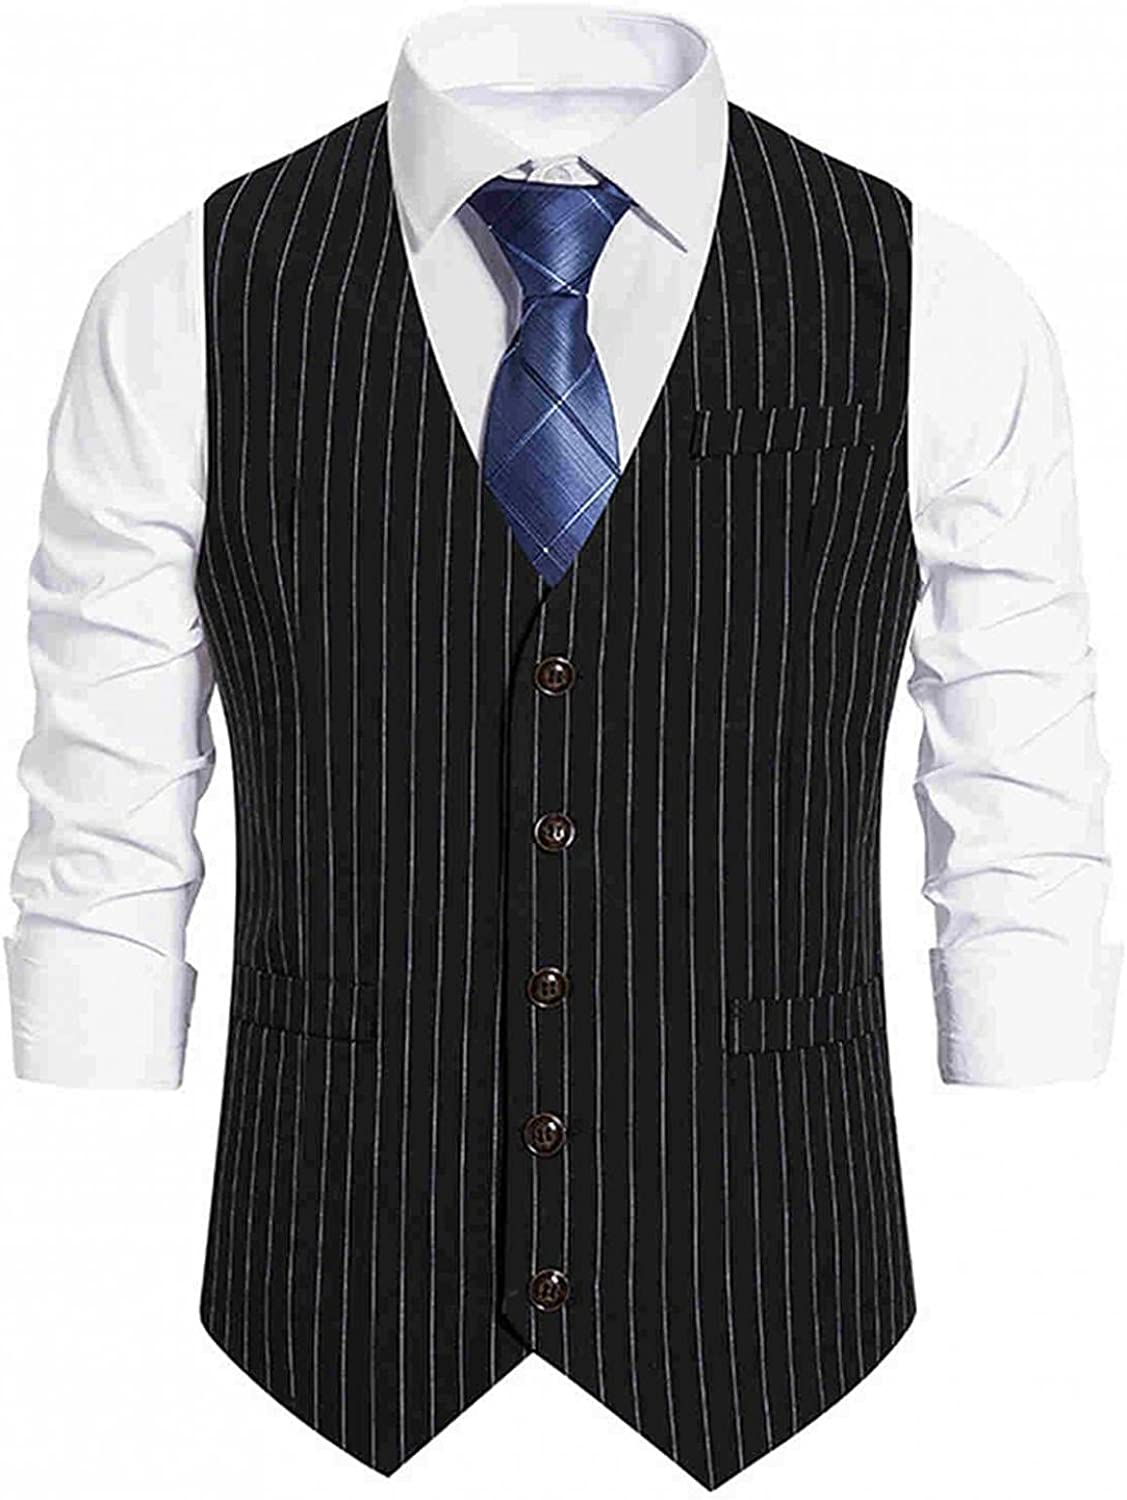 WoCoo Men's Dress Vest Single Breasted Plaid Print Button Down Waistcoat Tops Casual Business Formal Suit Vests